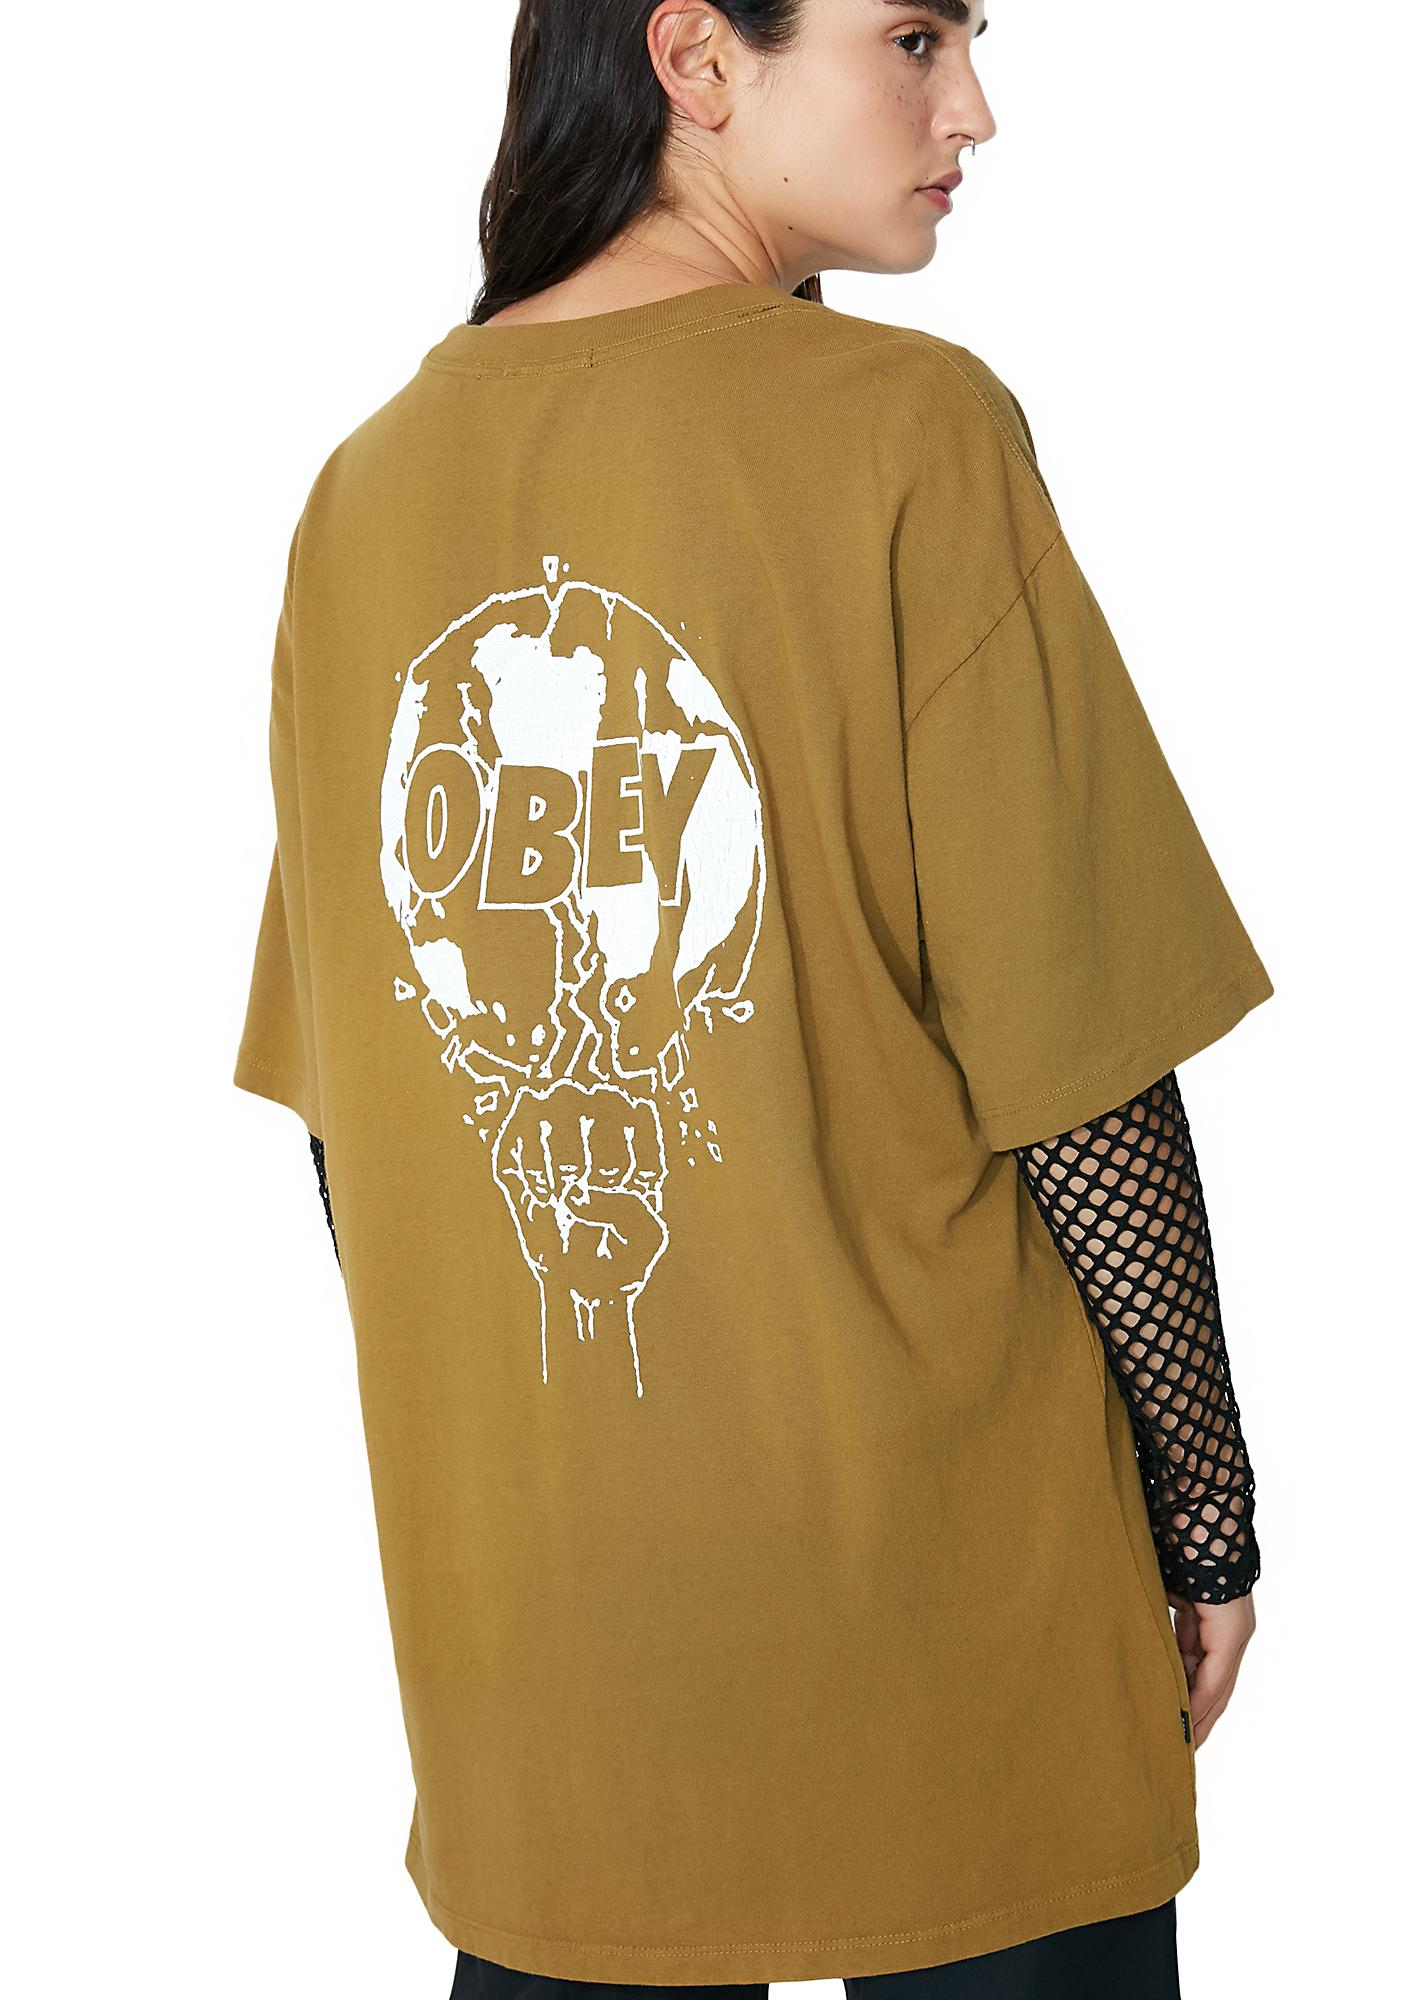 Obey Smash It Up Box Pigment Tee